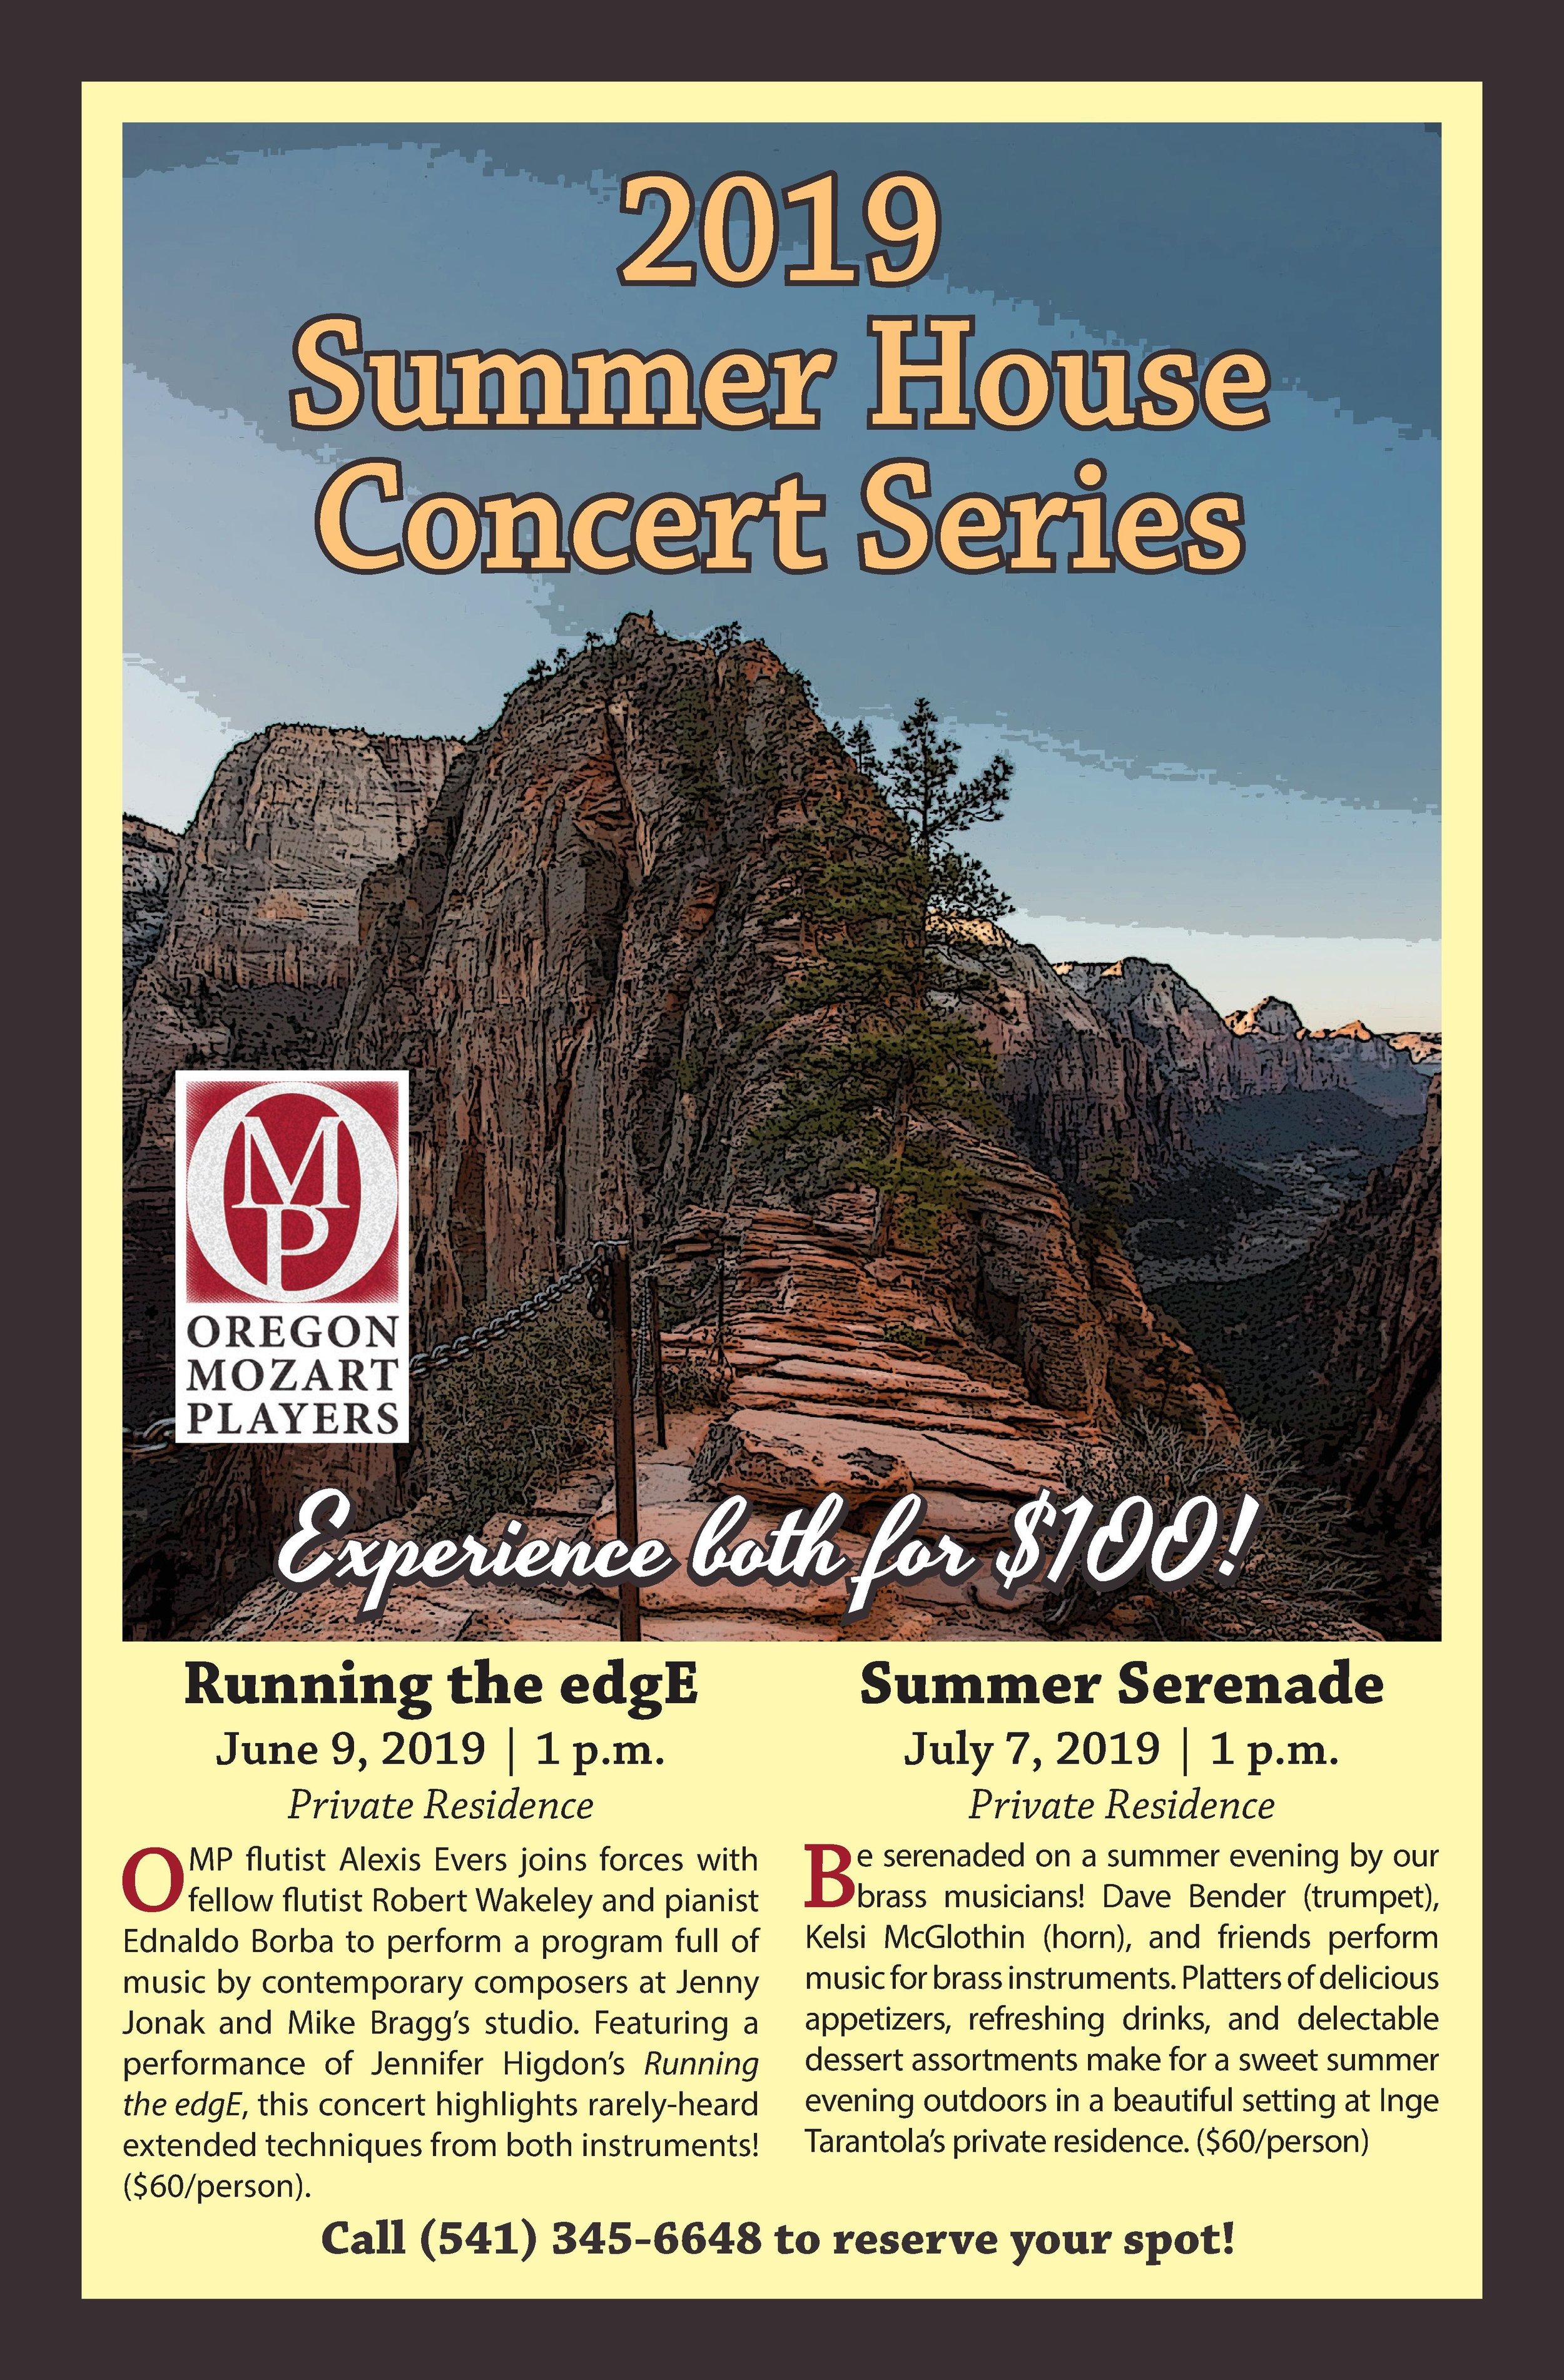 2019 Summer House Concert Series - Even though our 2018-2019 season has ended, we're still bringing you up-close-and-personal concert experiences this summer with two unique programs in small venues!Both events are taking place in private residences; in order to protect the privacy of our gracious hosts, we will confirm locations with you once you have purchased your ticket(s).Both events are catered and capacity is limited, so get your tickets today by scrolling down on this page or calling our office at (541) 345-6648! More details on both events below.